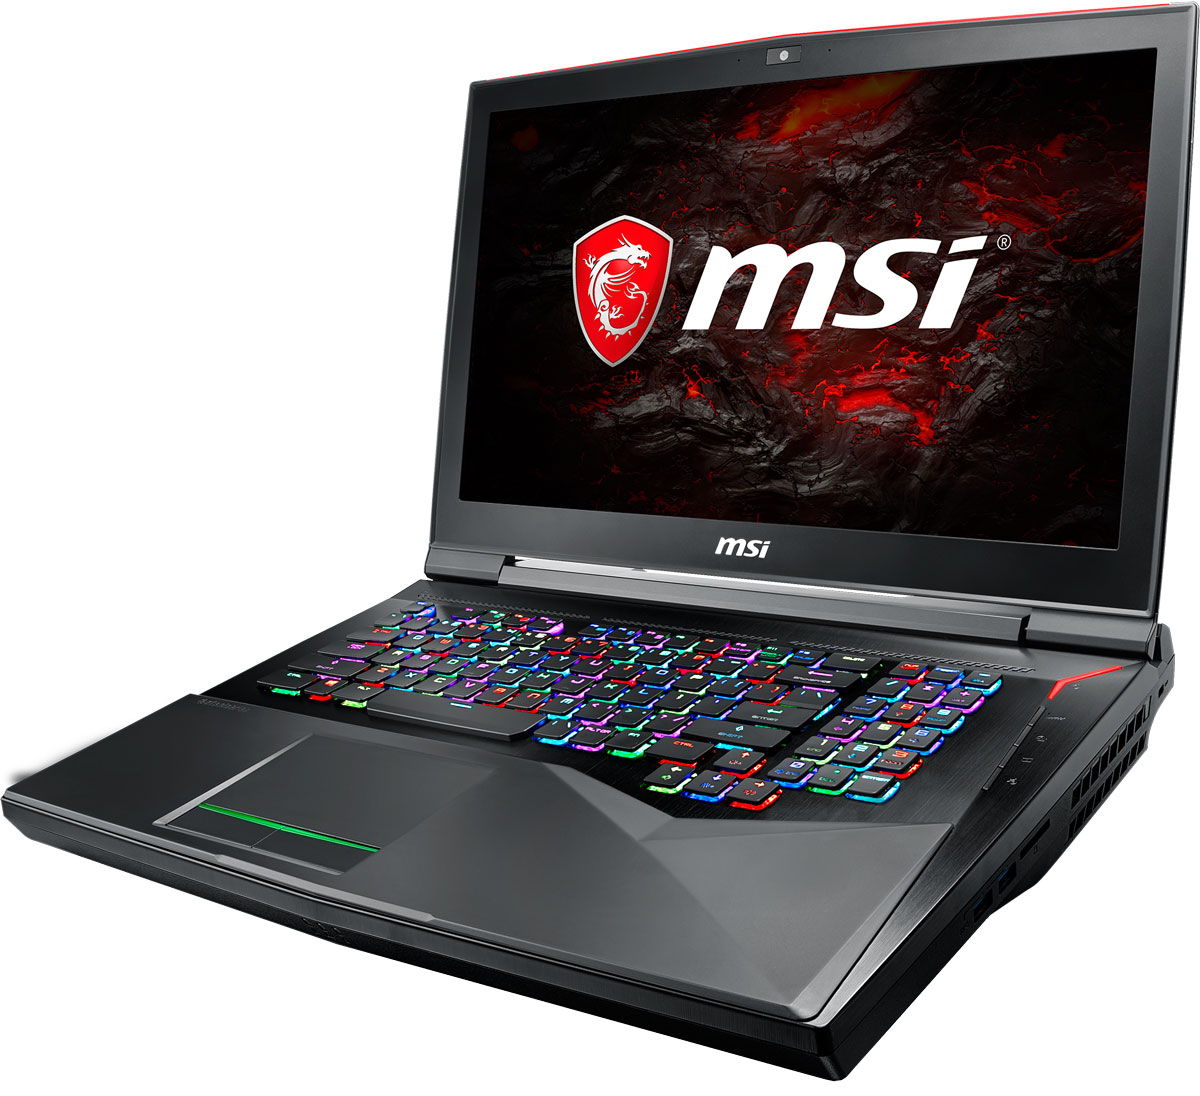 17.3 Игровой ноутбук MSI GT75 Titan 8RG 9S7-17A311-052, черный ноутбук msi gt83 8rg 005ru titan intel core i7 8850h 2600 mhz 18 4 1920х1080 32768mb 512gb hdd blu ray nvidia geforce gtx 1080 х 2 wifi windows 10 home